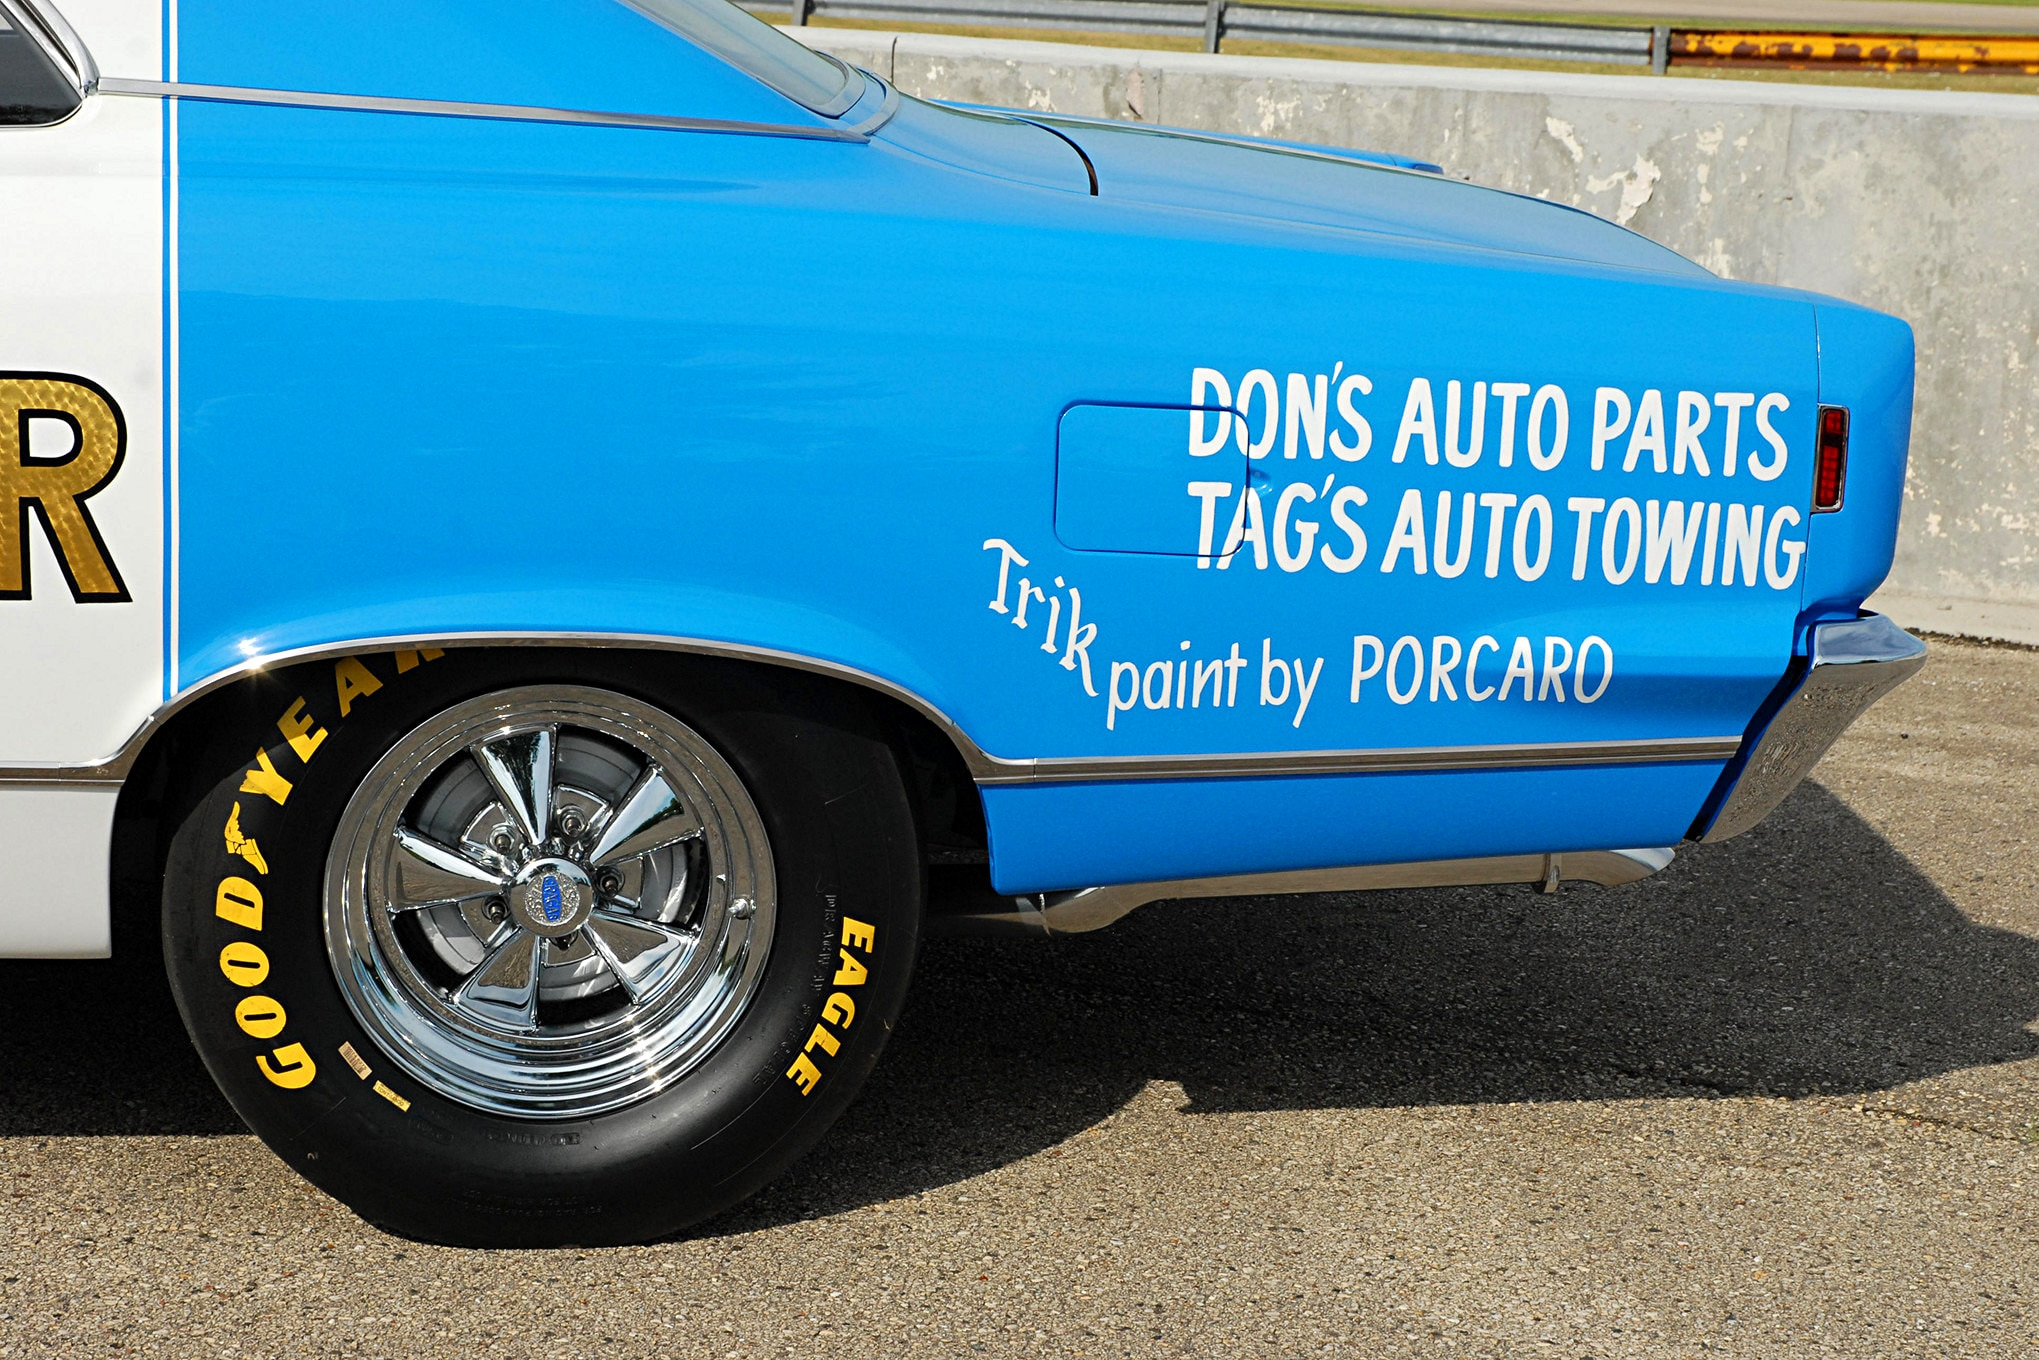 Aherns chose a set of 50th Anniversary Cragar S/S five-spoke wheels for the period-correct restoration and wrapped the rears in the latest Goodyear racing rubber. Also note that both Tony Tag and Dennis Porcaro were paid homage on the rear fender.